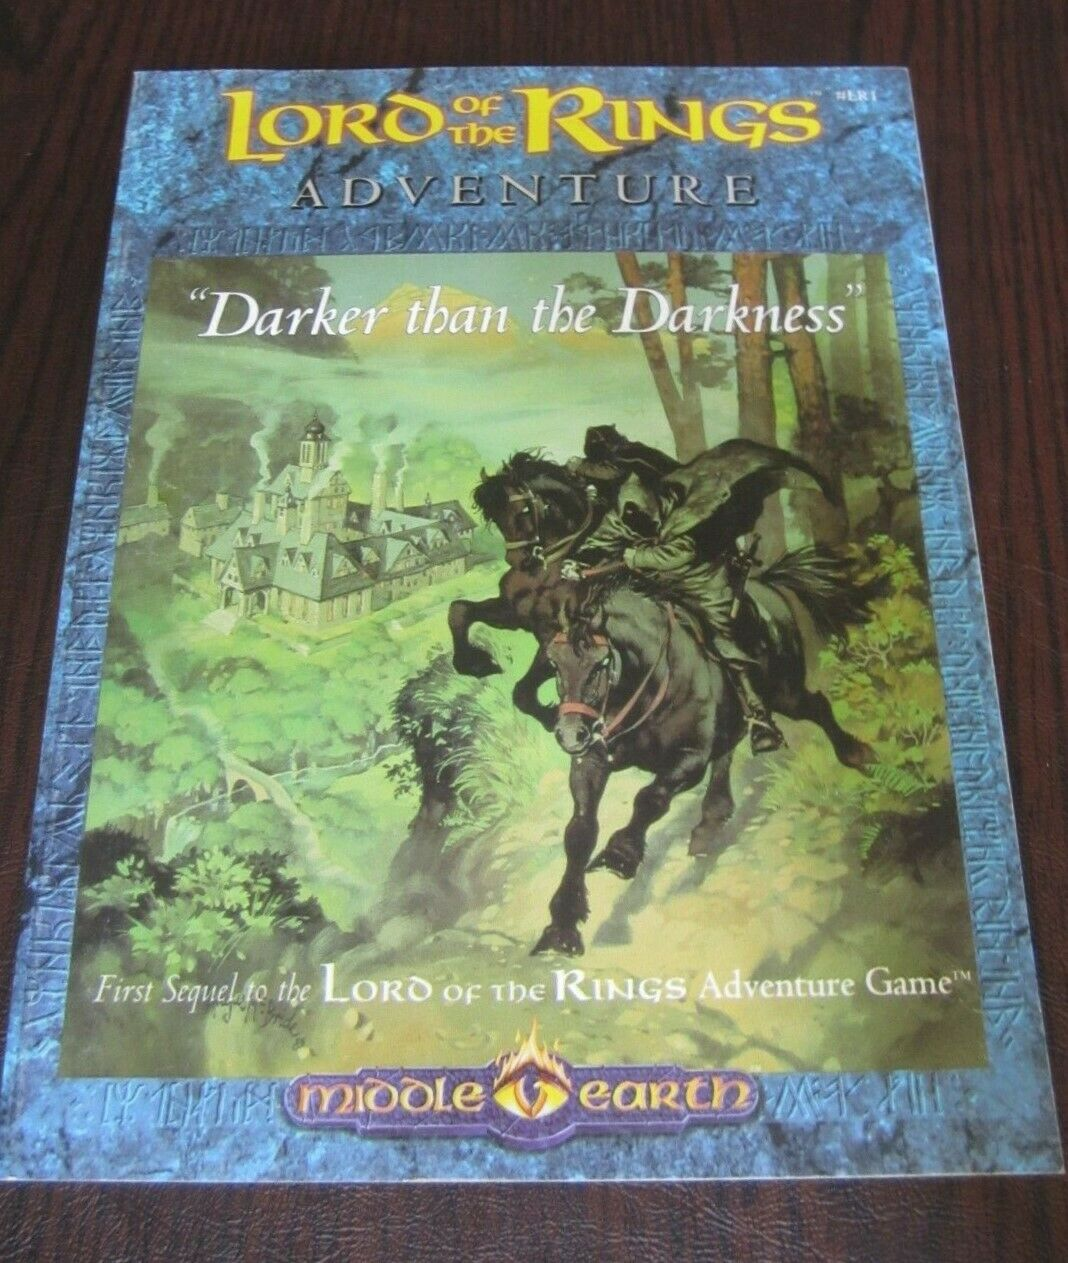 MERP Lord of the Rings Darker than the Darkness Darkness Darkness Adventure Game Middle-earth VF a972d9